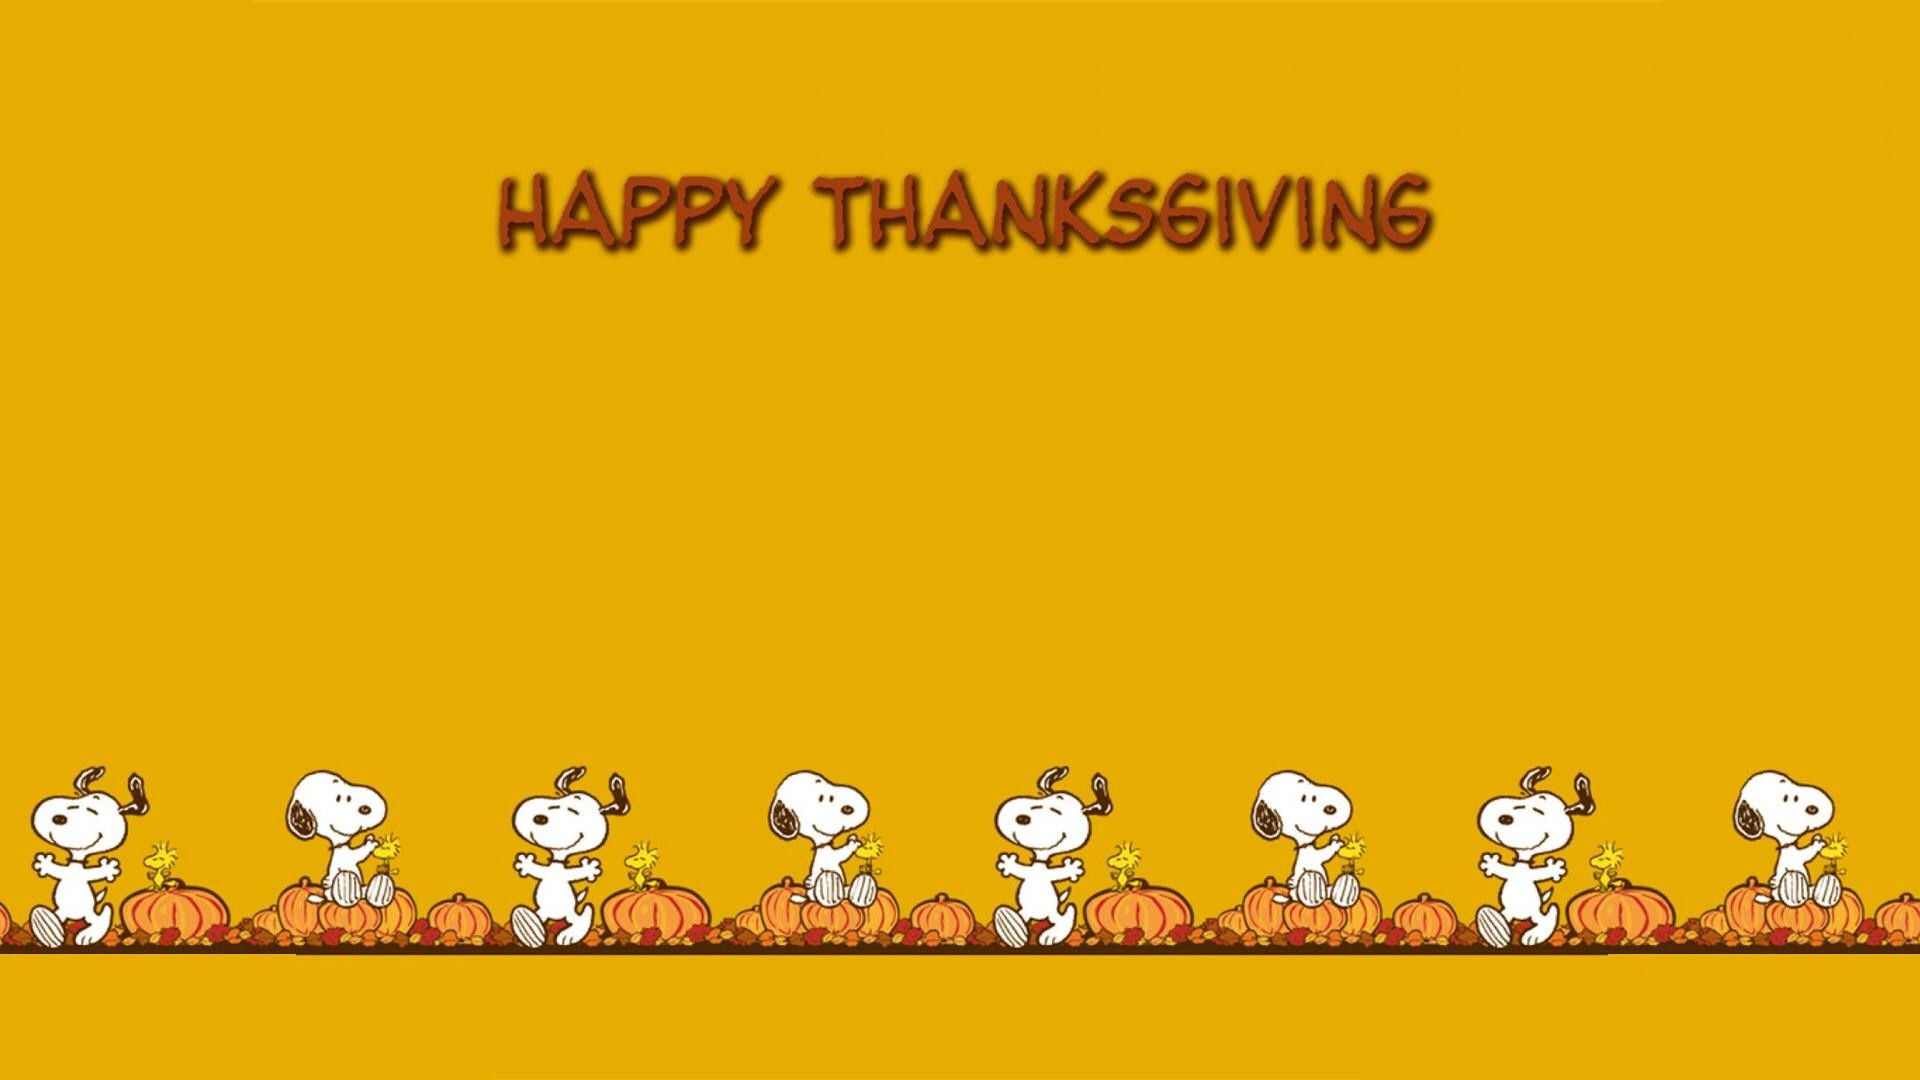 1920x1080 Snoopy Thanksgiving Wallpaper Backgrounds Widescreen